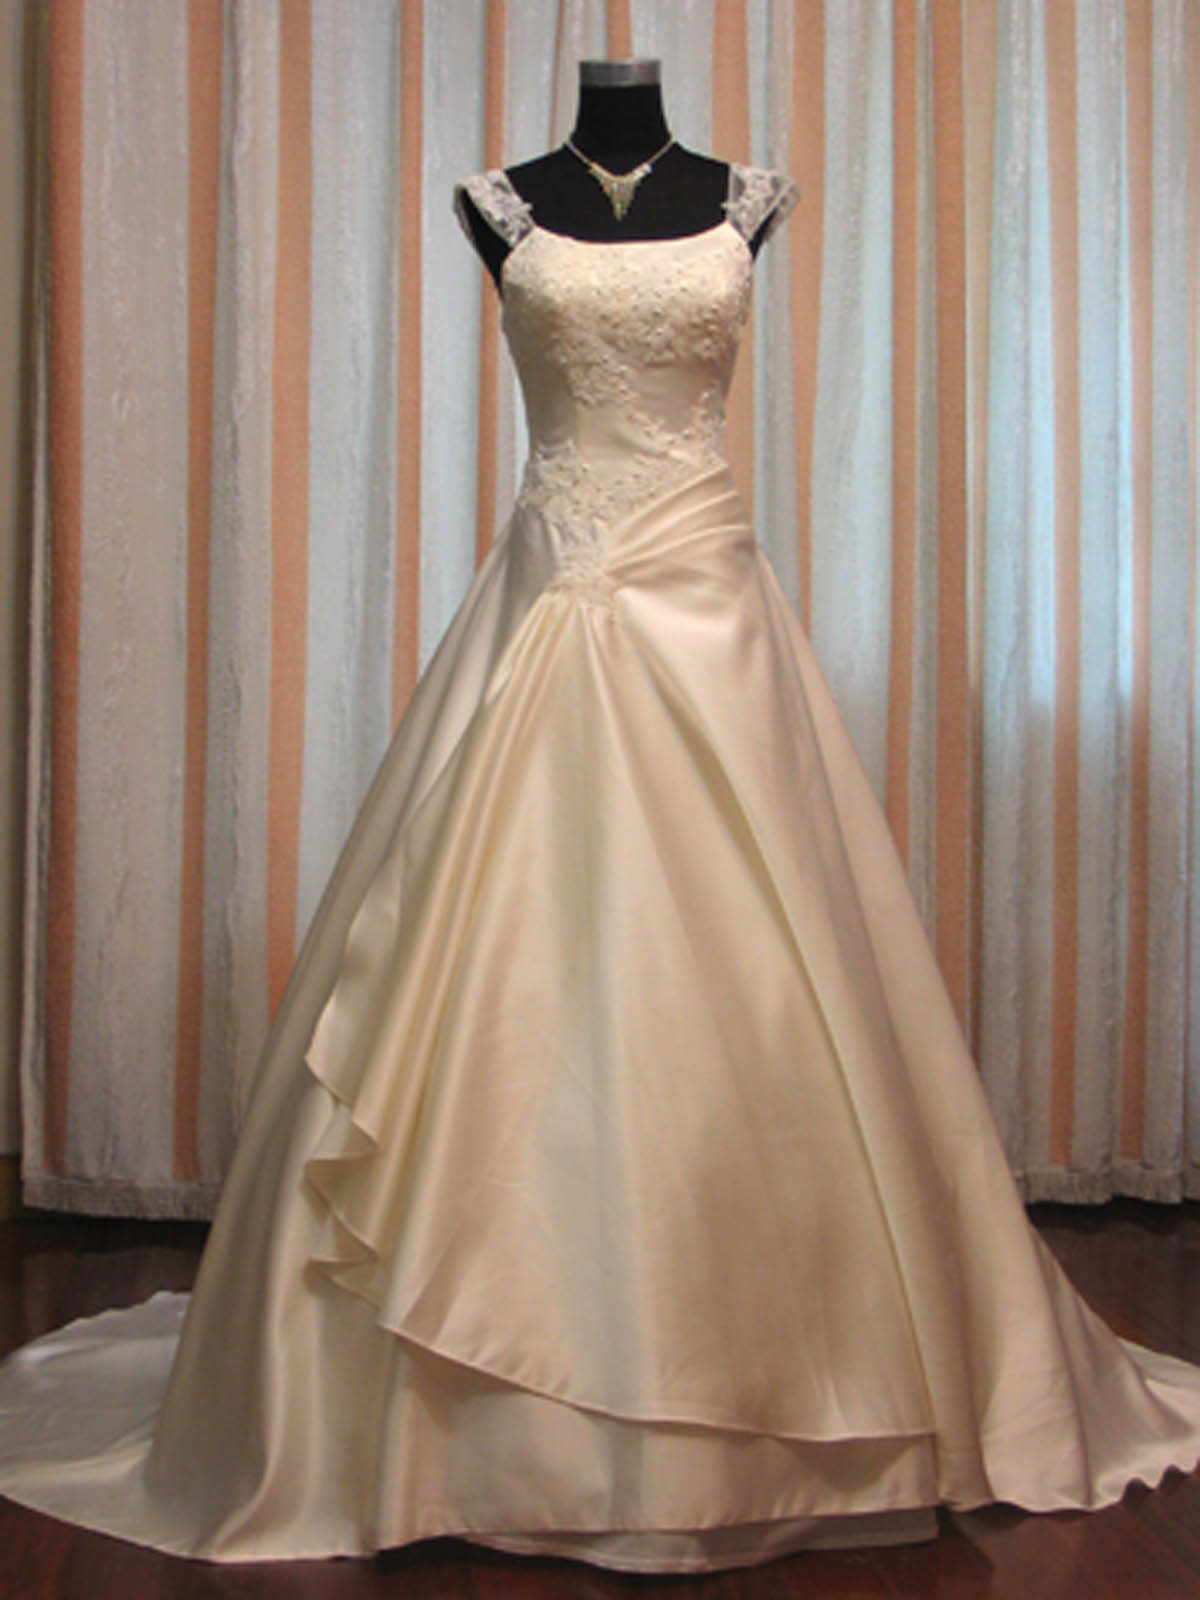 Modest Wedding Gown - Penelope